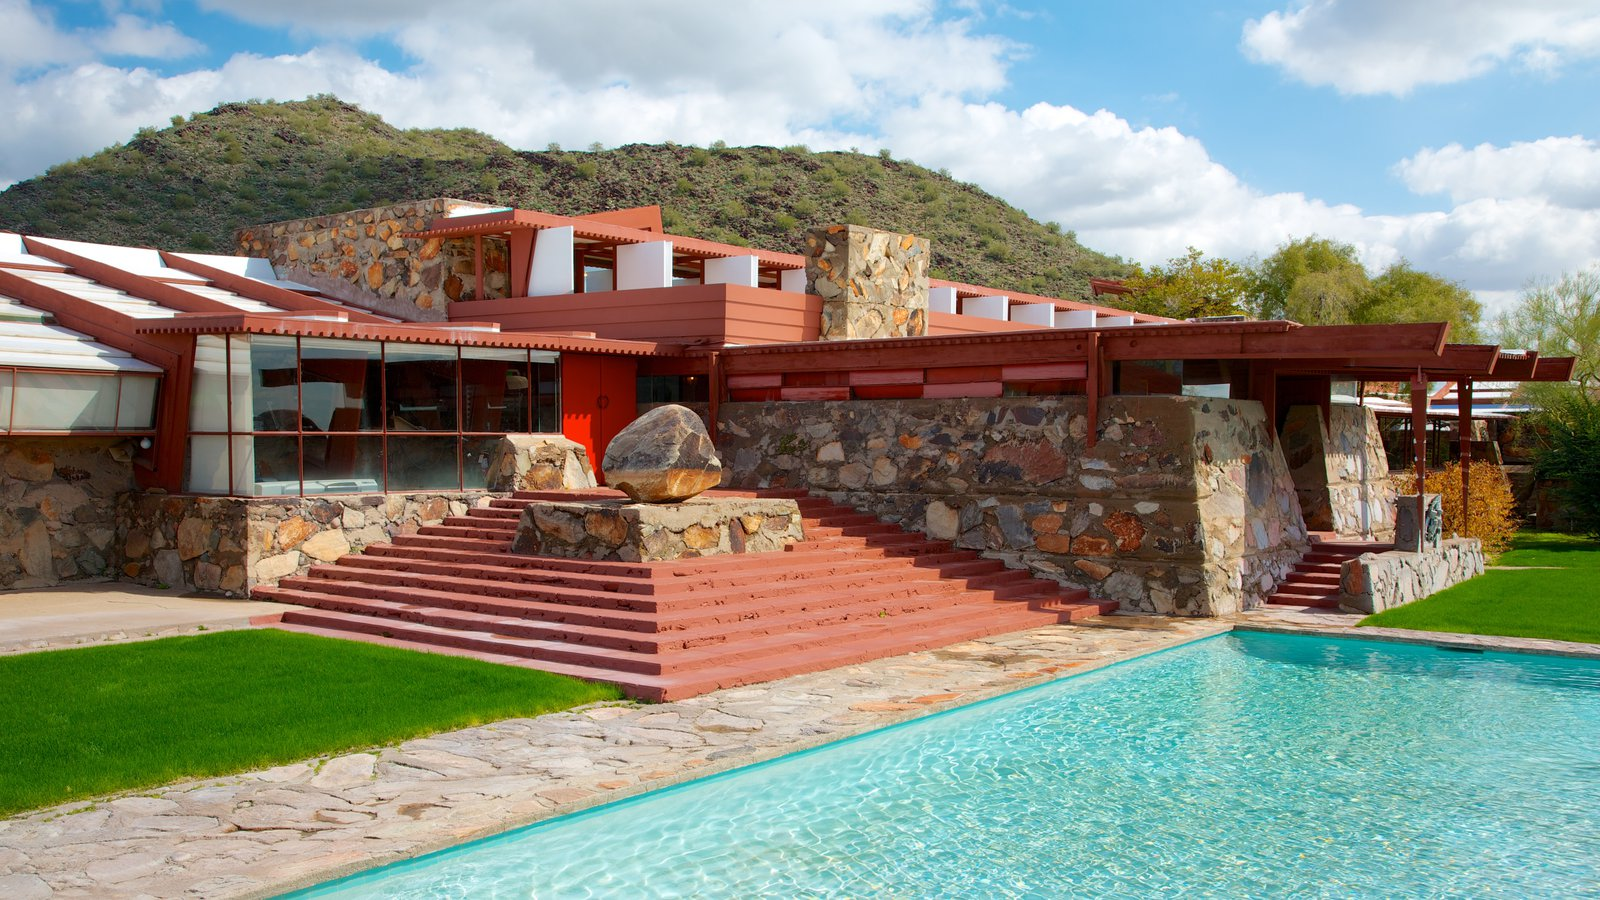 Taliesin West showing a house and a pool